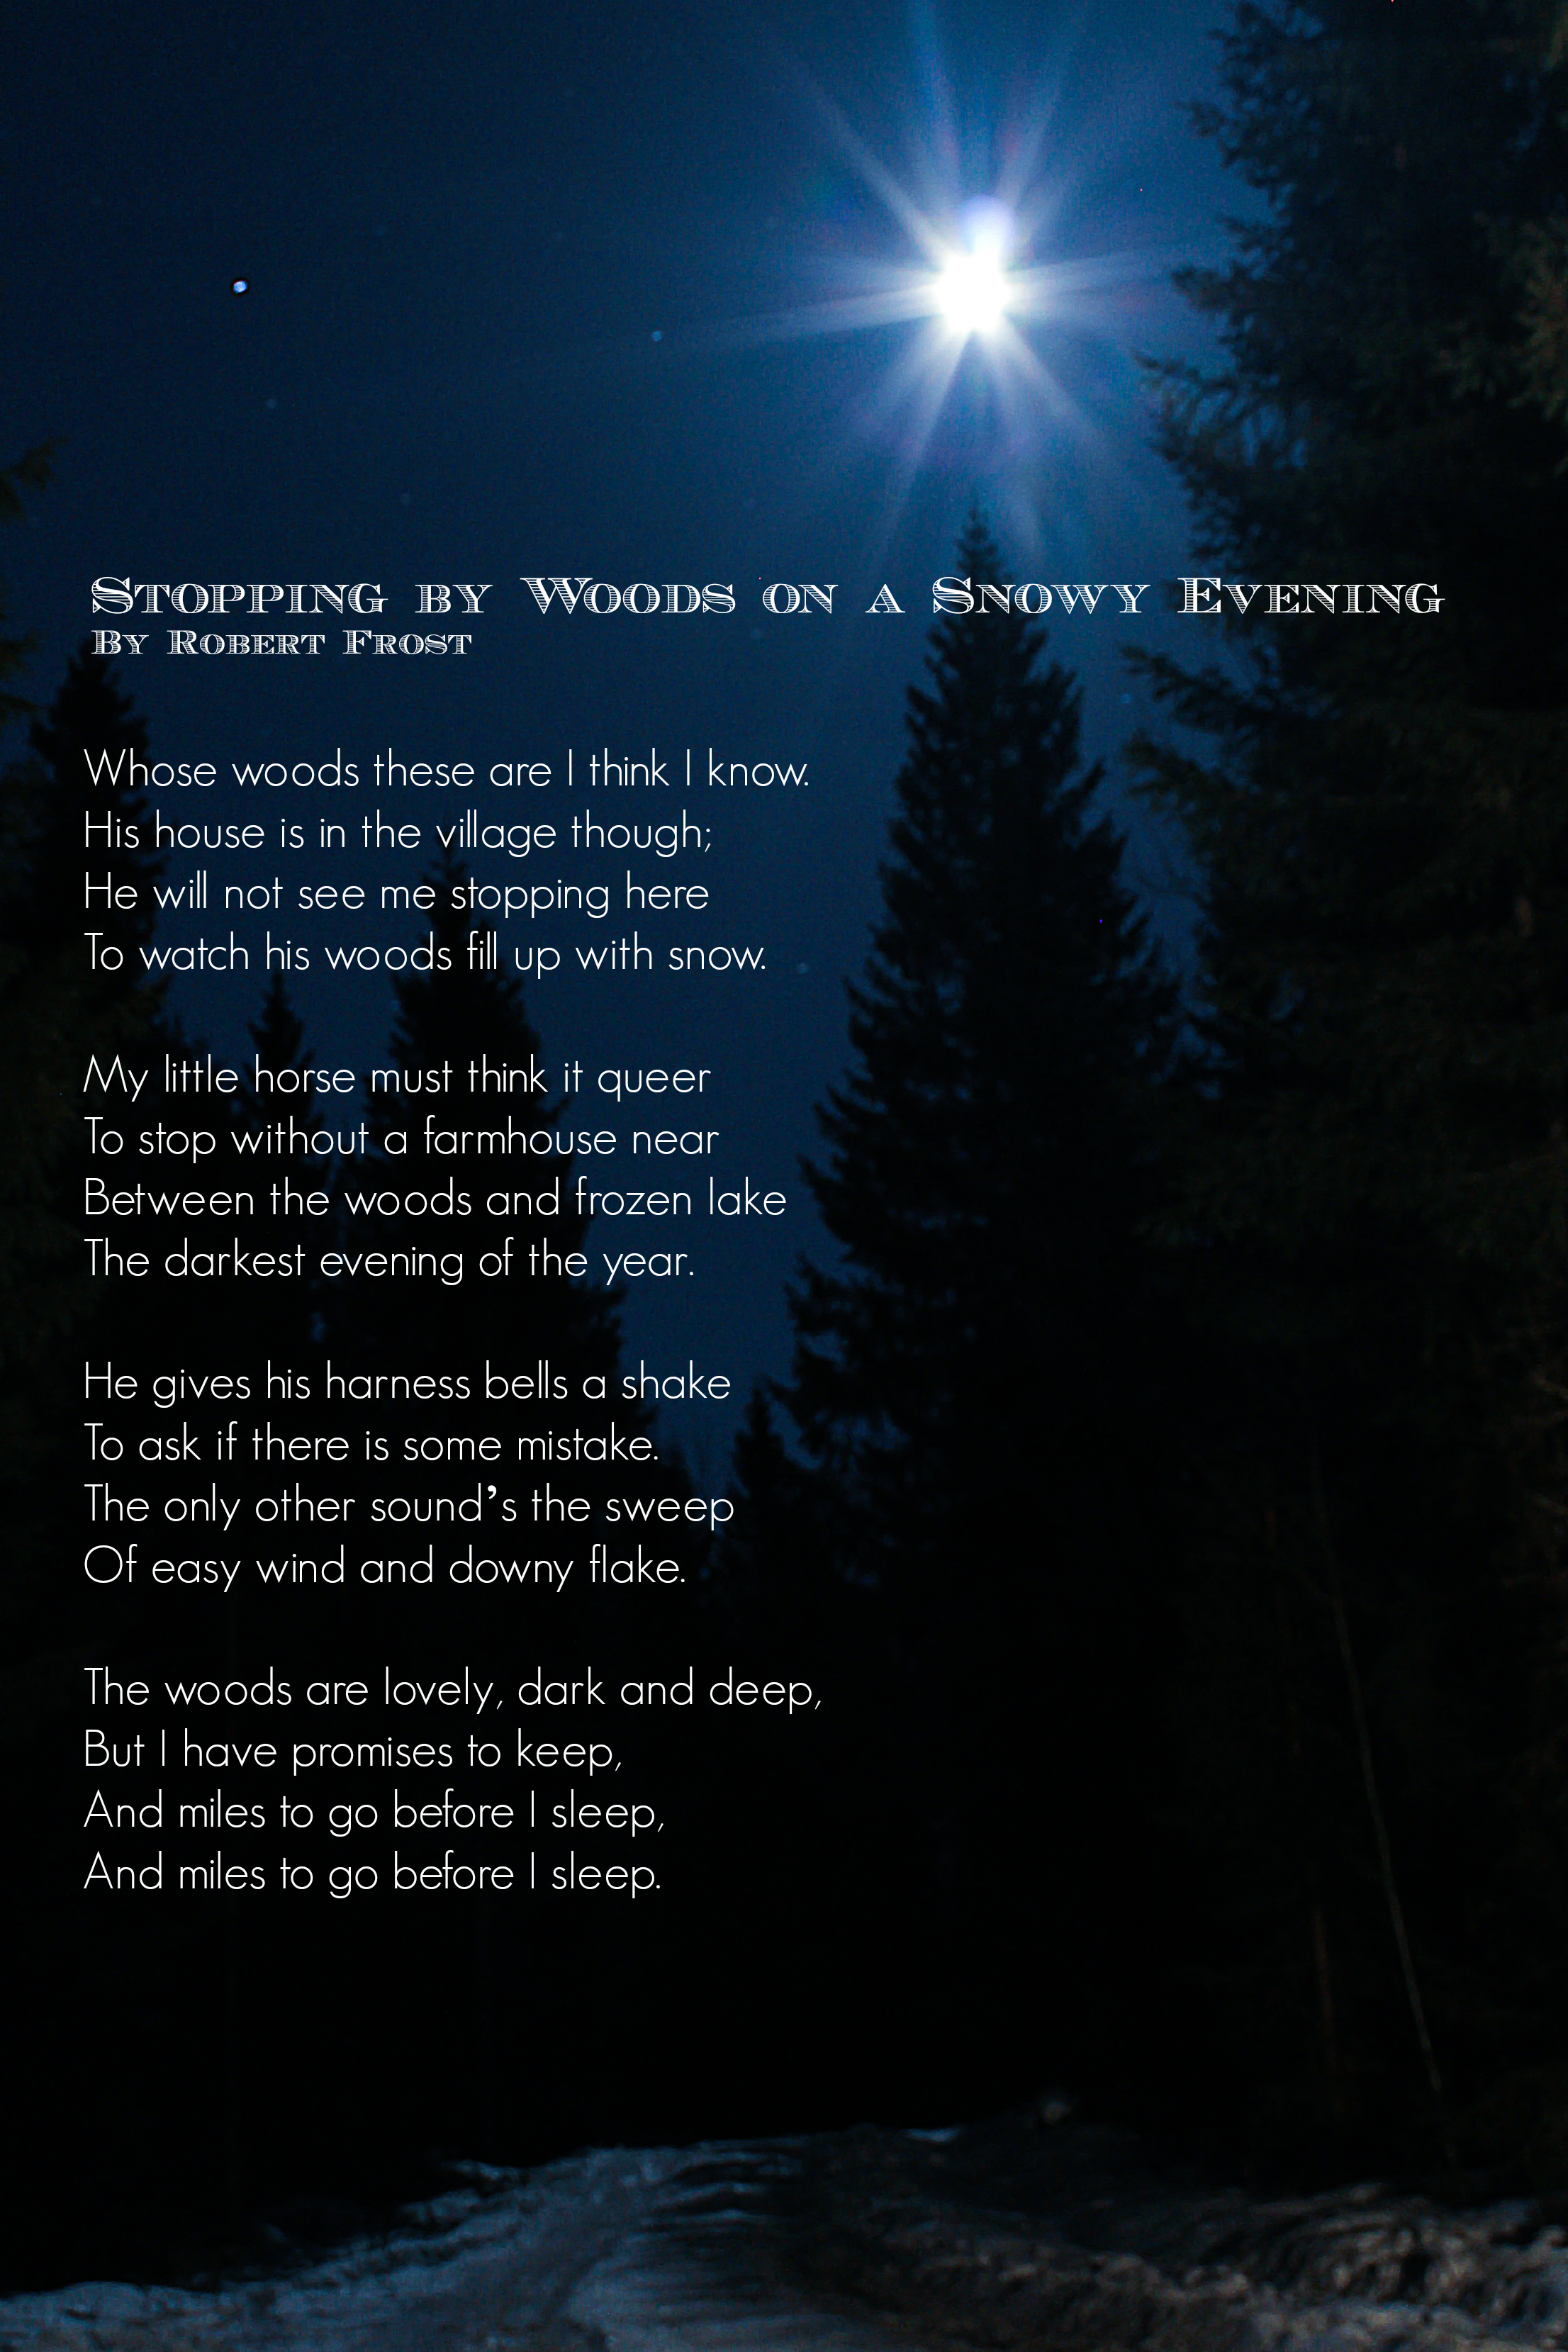 an analysis of stopping by the woods on a snowy evening by robert frost